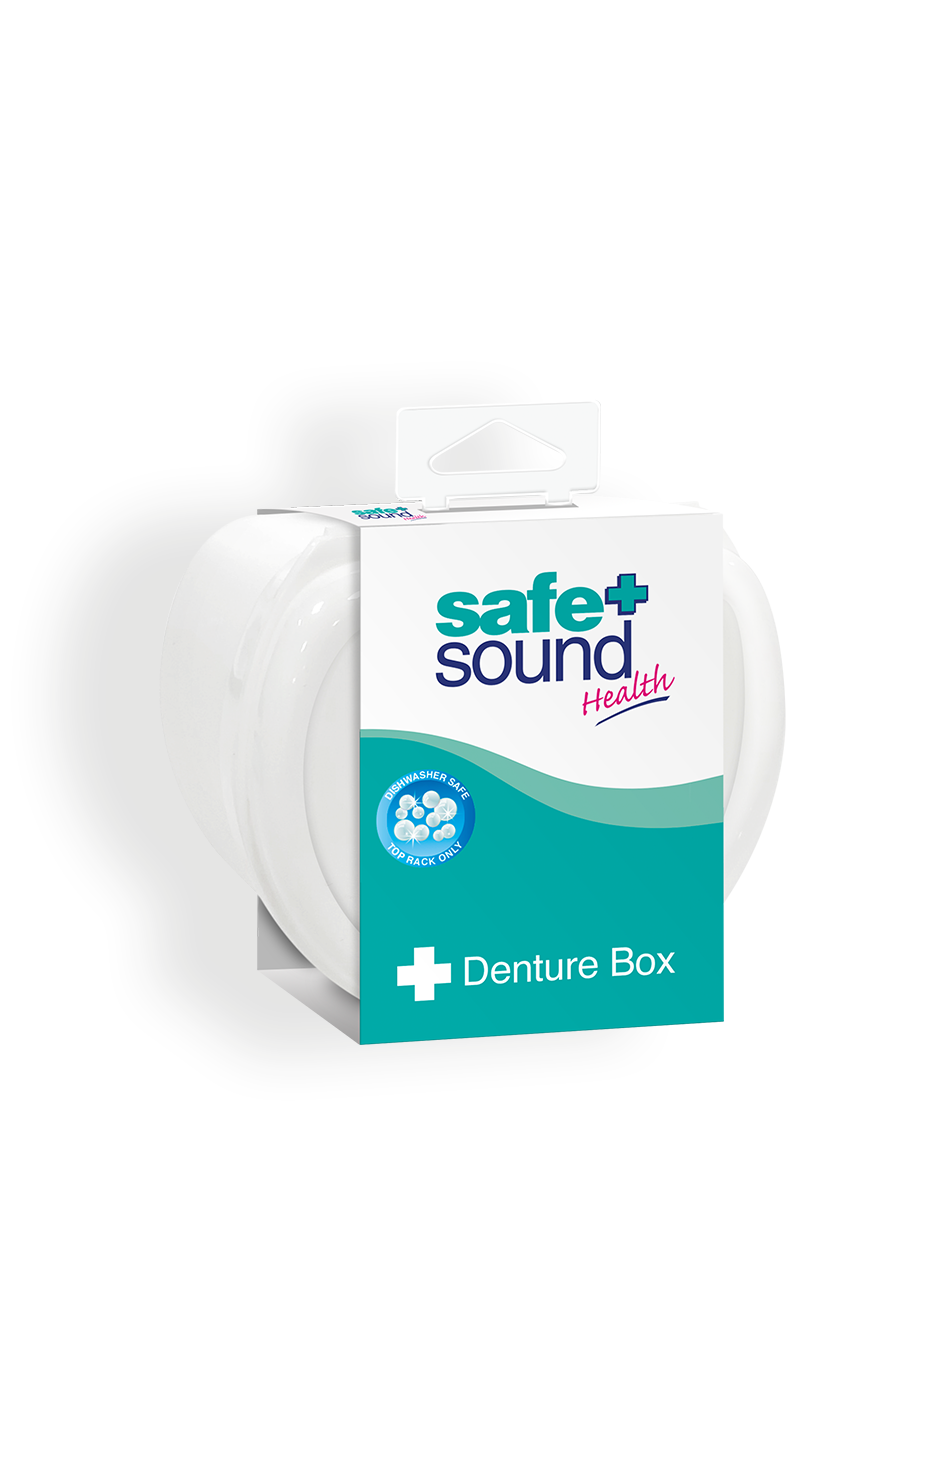 Safe and Sound Health Denture Box